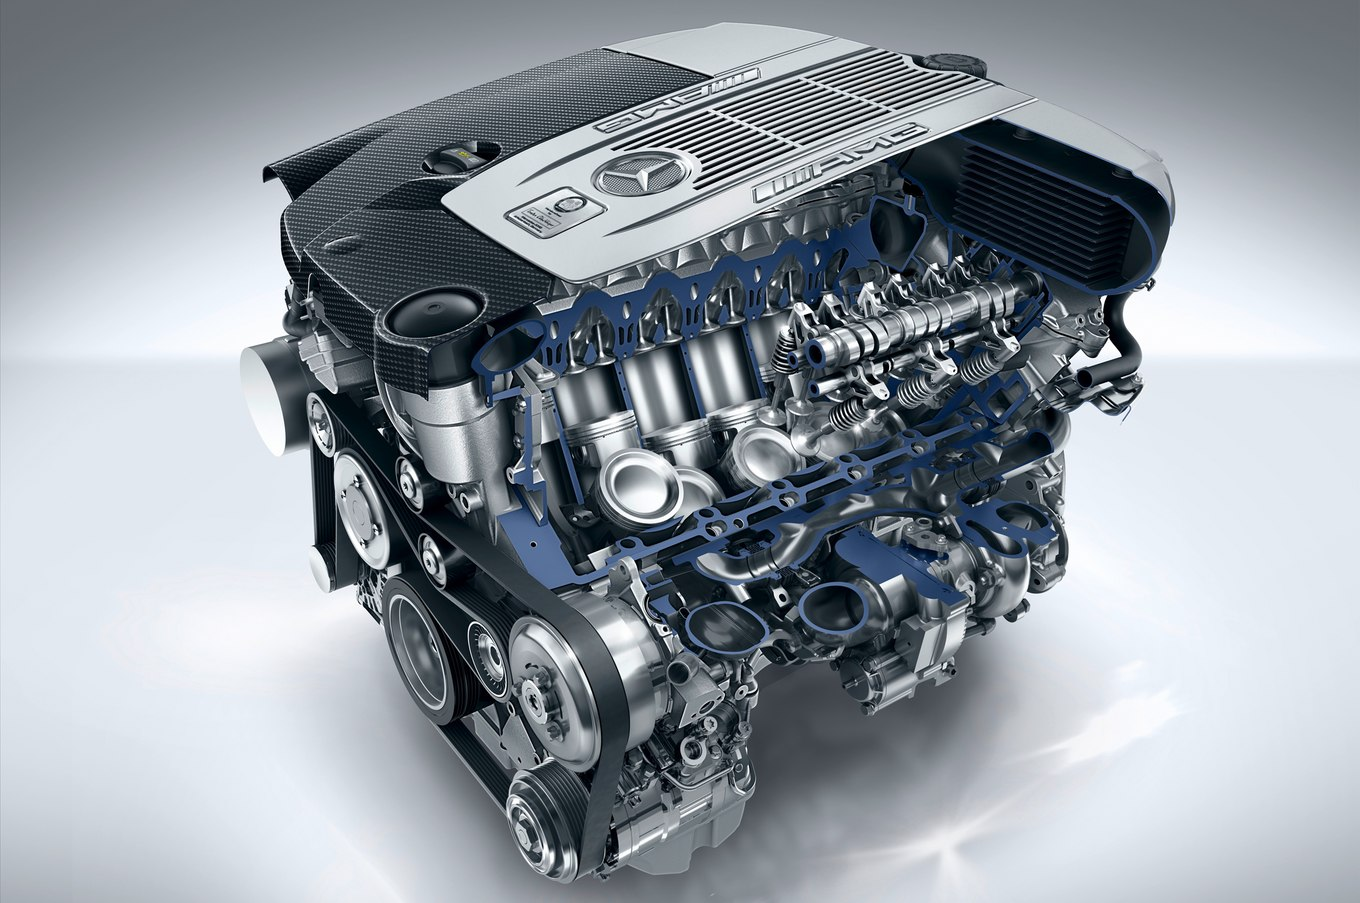 Mercedes-benz engine photo - 10